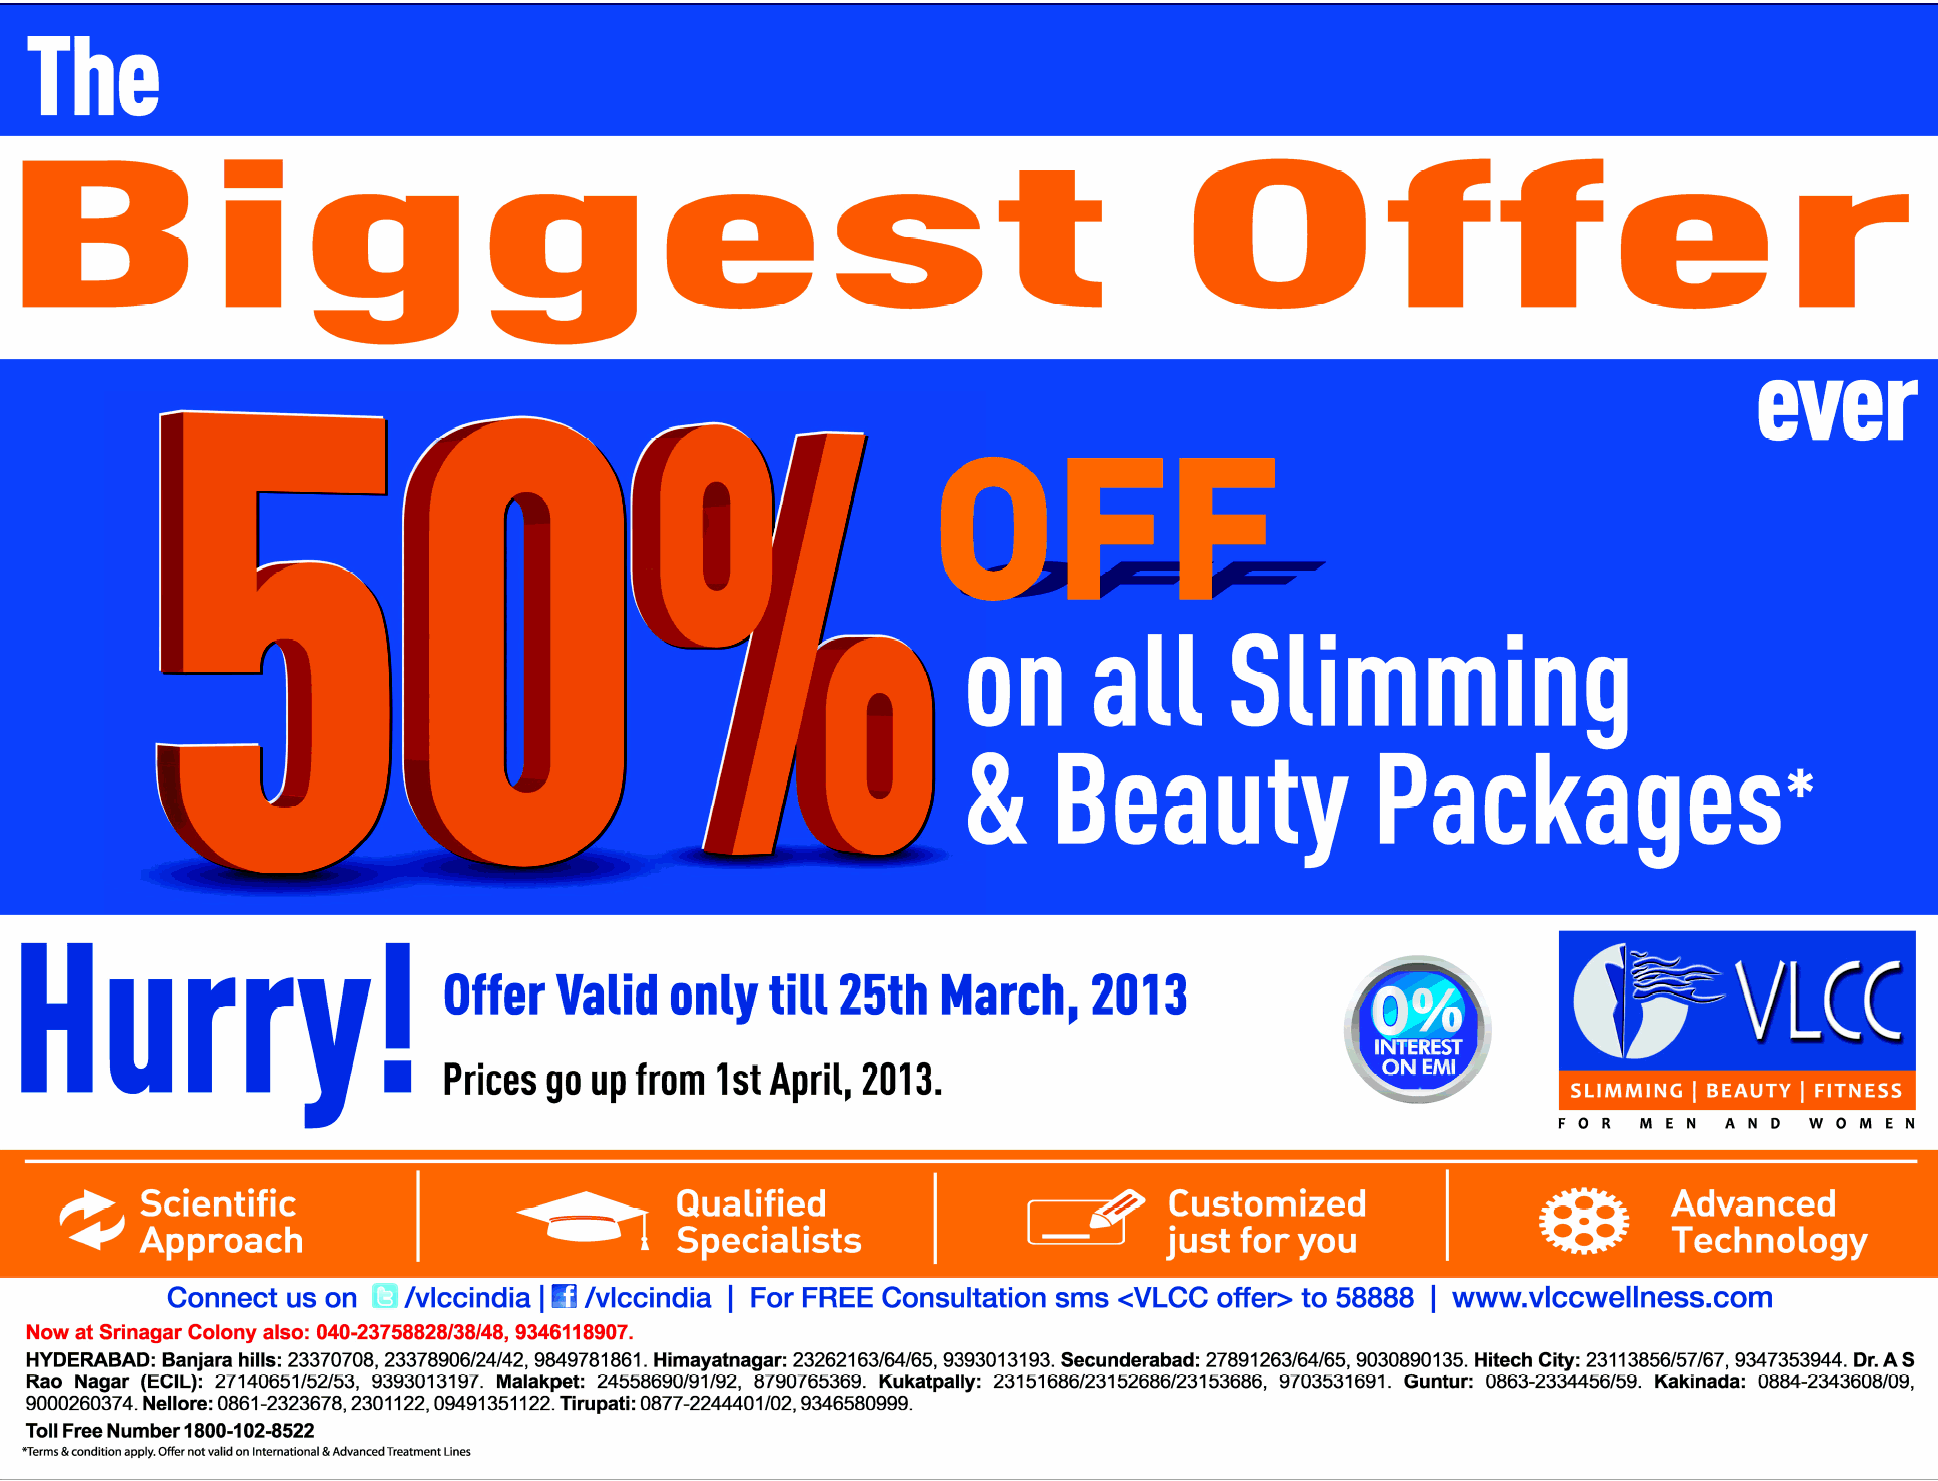 VLCC presents The Biggest Offer ever 50% off on all ...